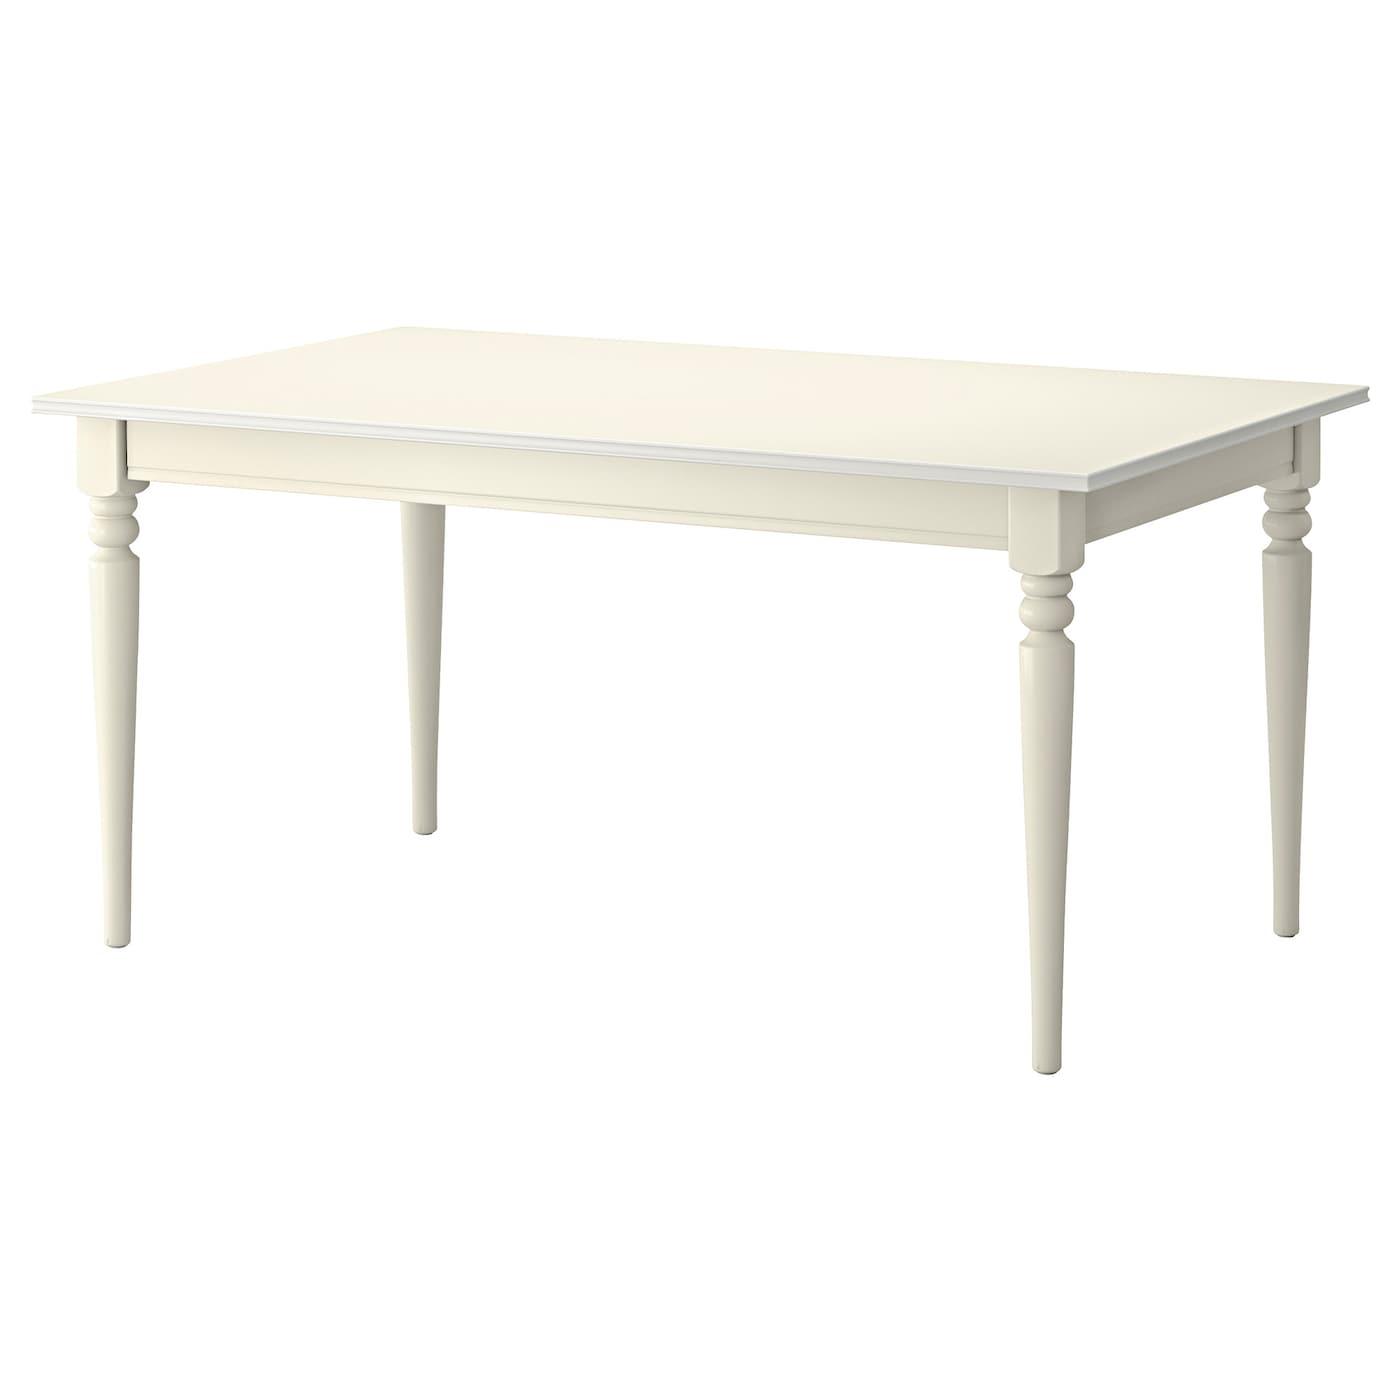 IKEA INGATORP table extensible 1 rallonge incluse. La surface vernie est facile à nettoyer.